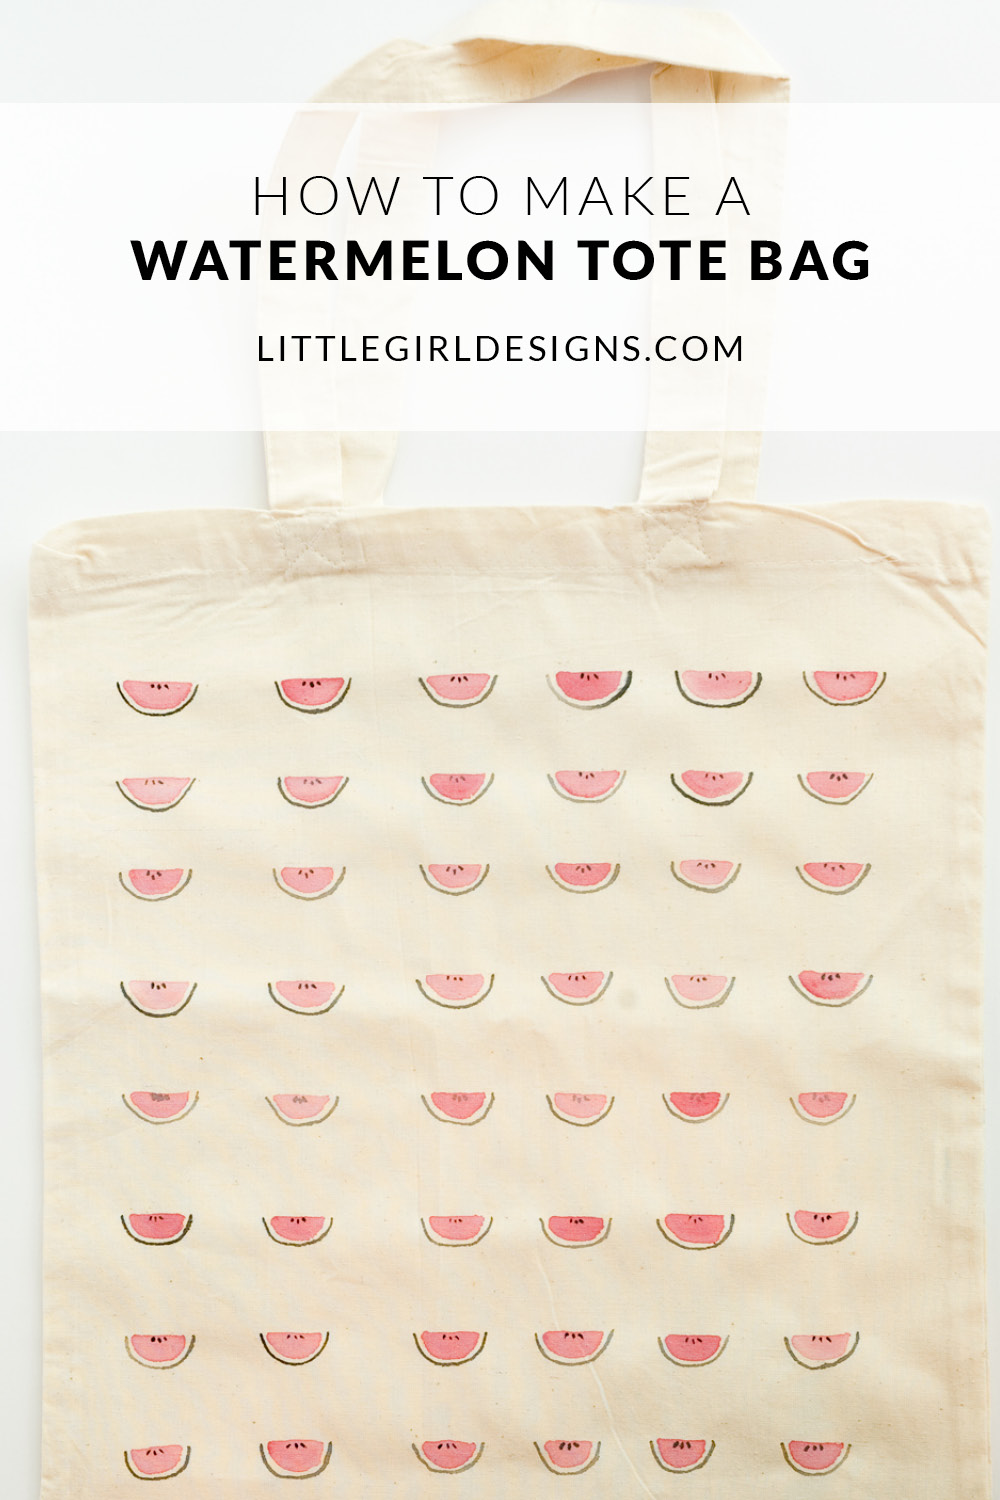 Summer's here and what better way to celebrate than to make this sweet watermelon tote bag! You can whip it up in an afternoon and use it all summer long to carry summer novels from the library and delicious produce from the farmer's market. :)